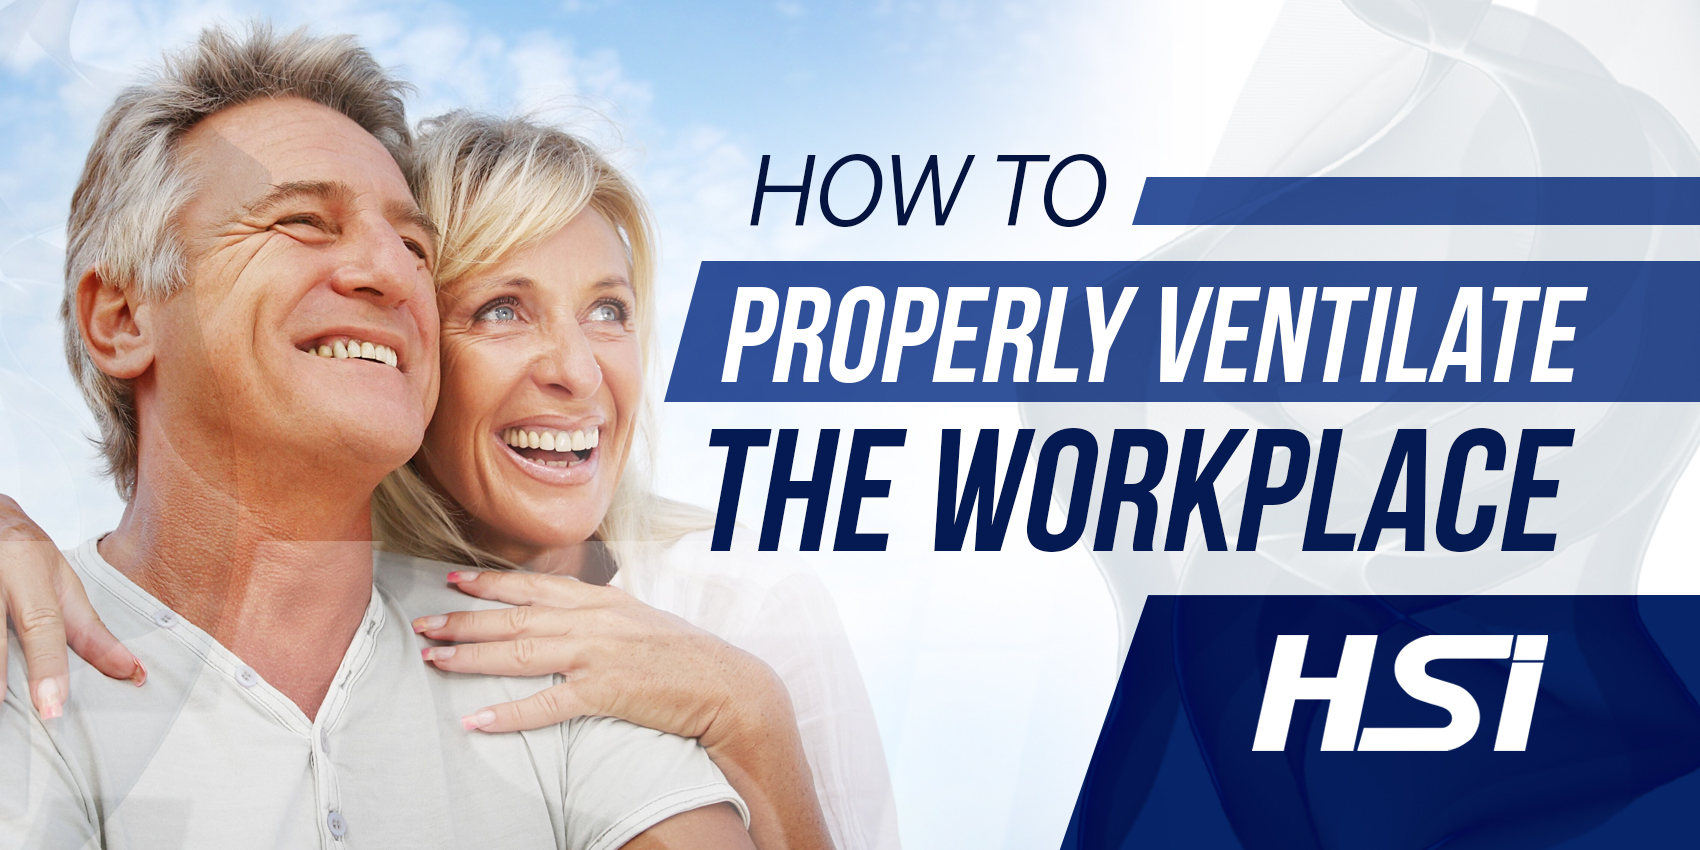 How to Properly Ventilate the Workplace